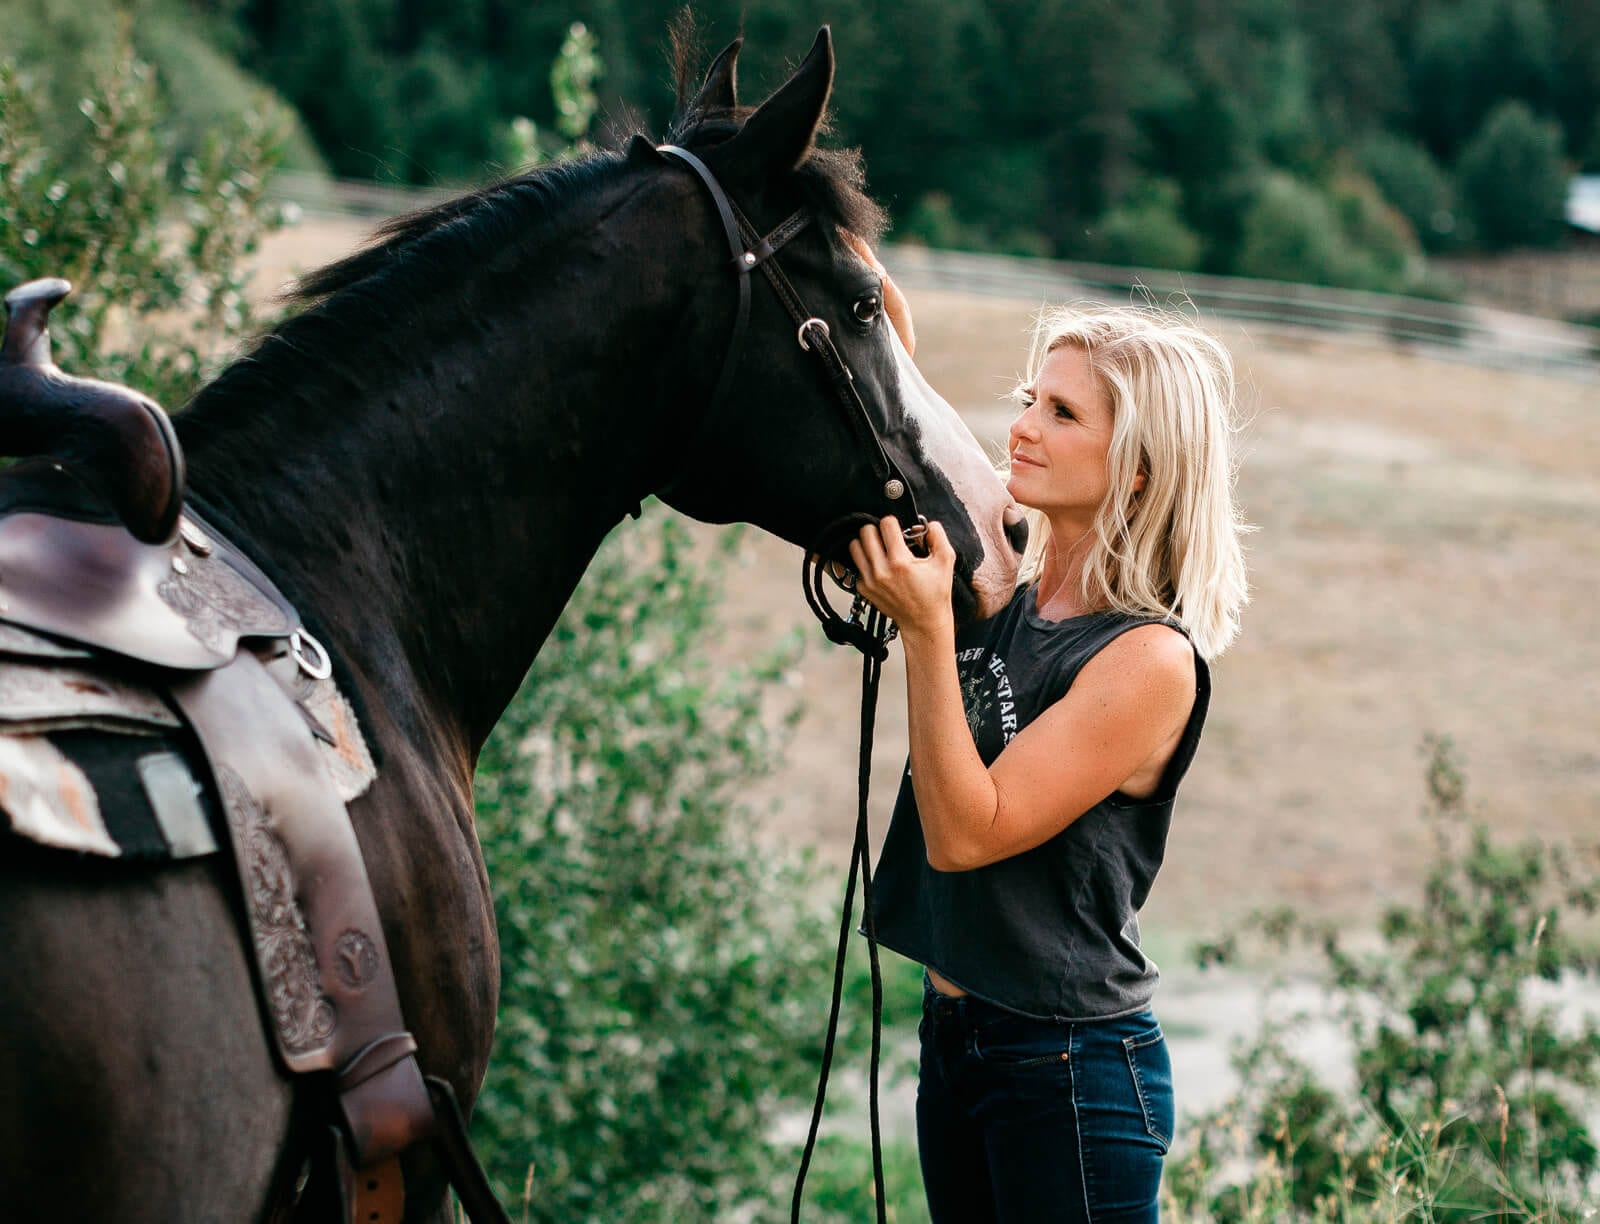 Tara with her horse